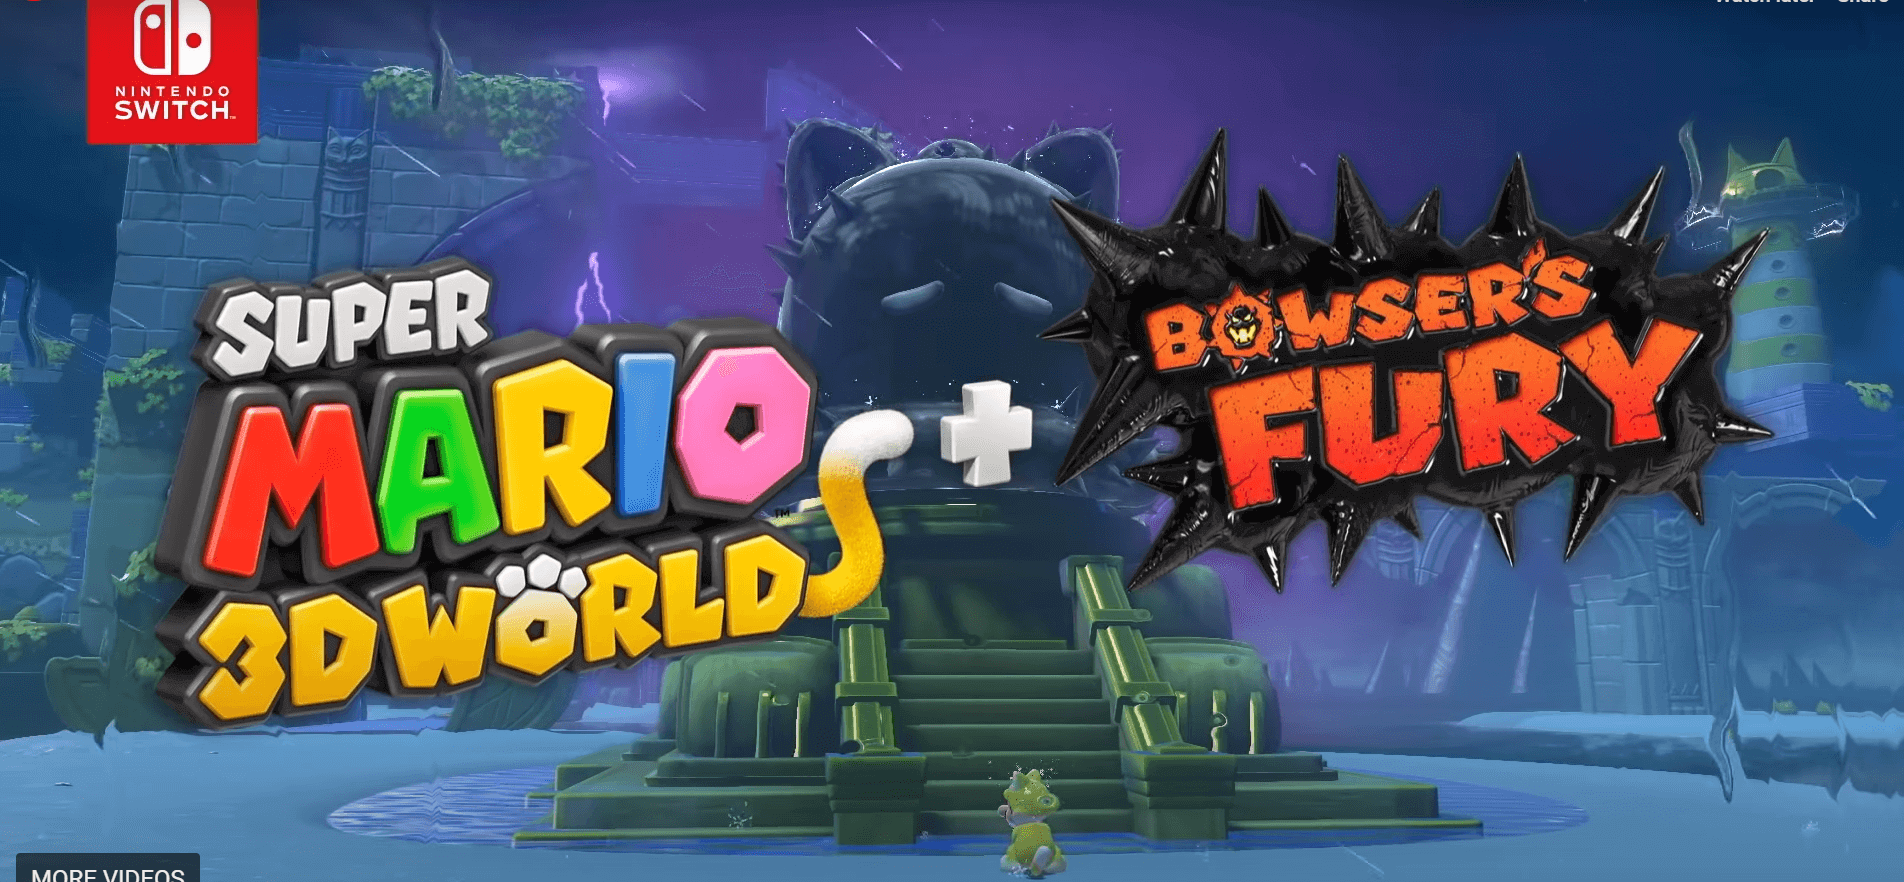 super mario 3d world bowsers fury online multiplayer